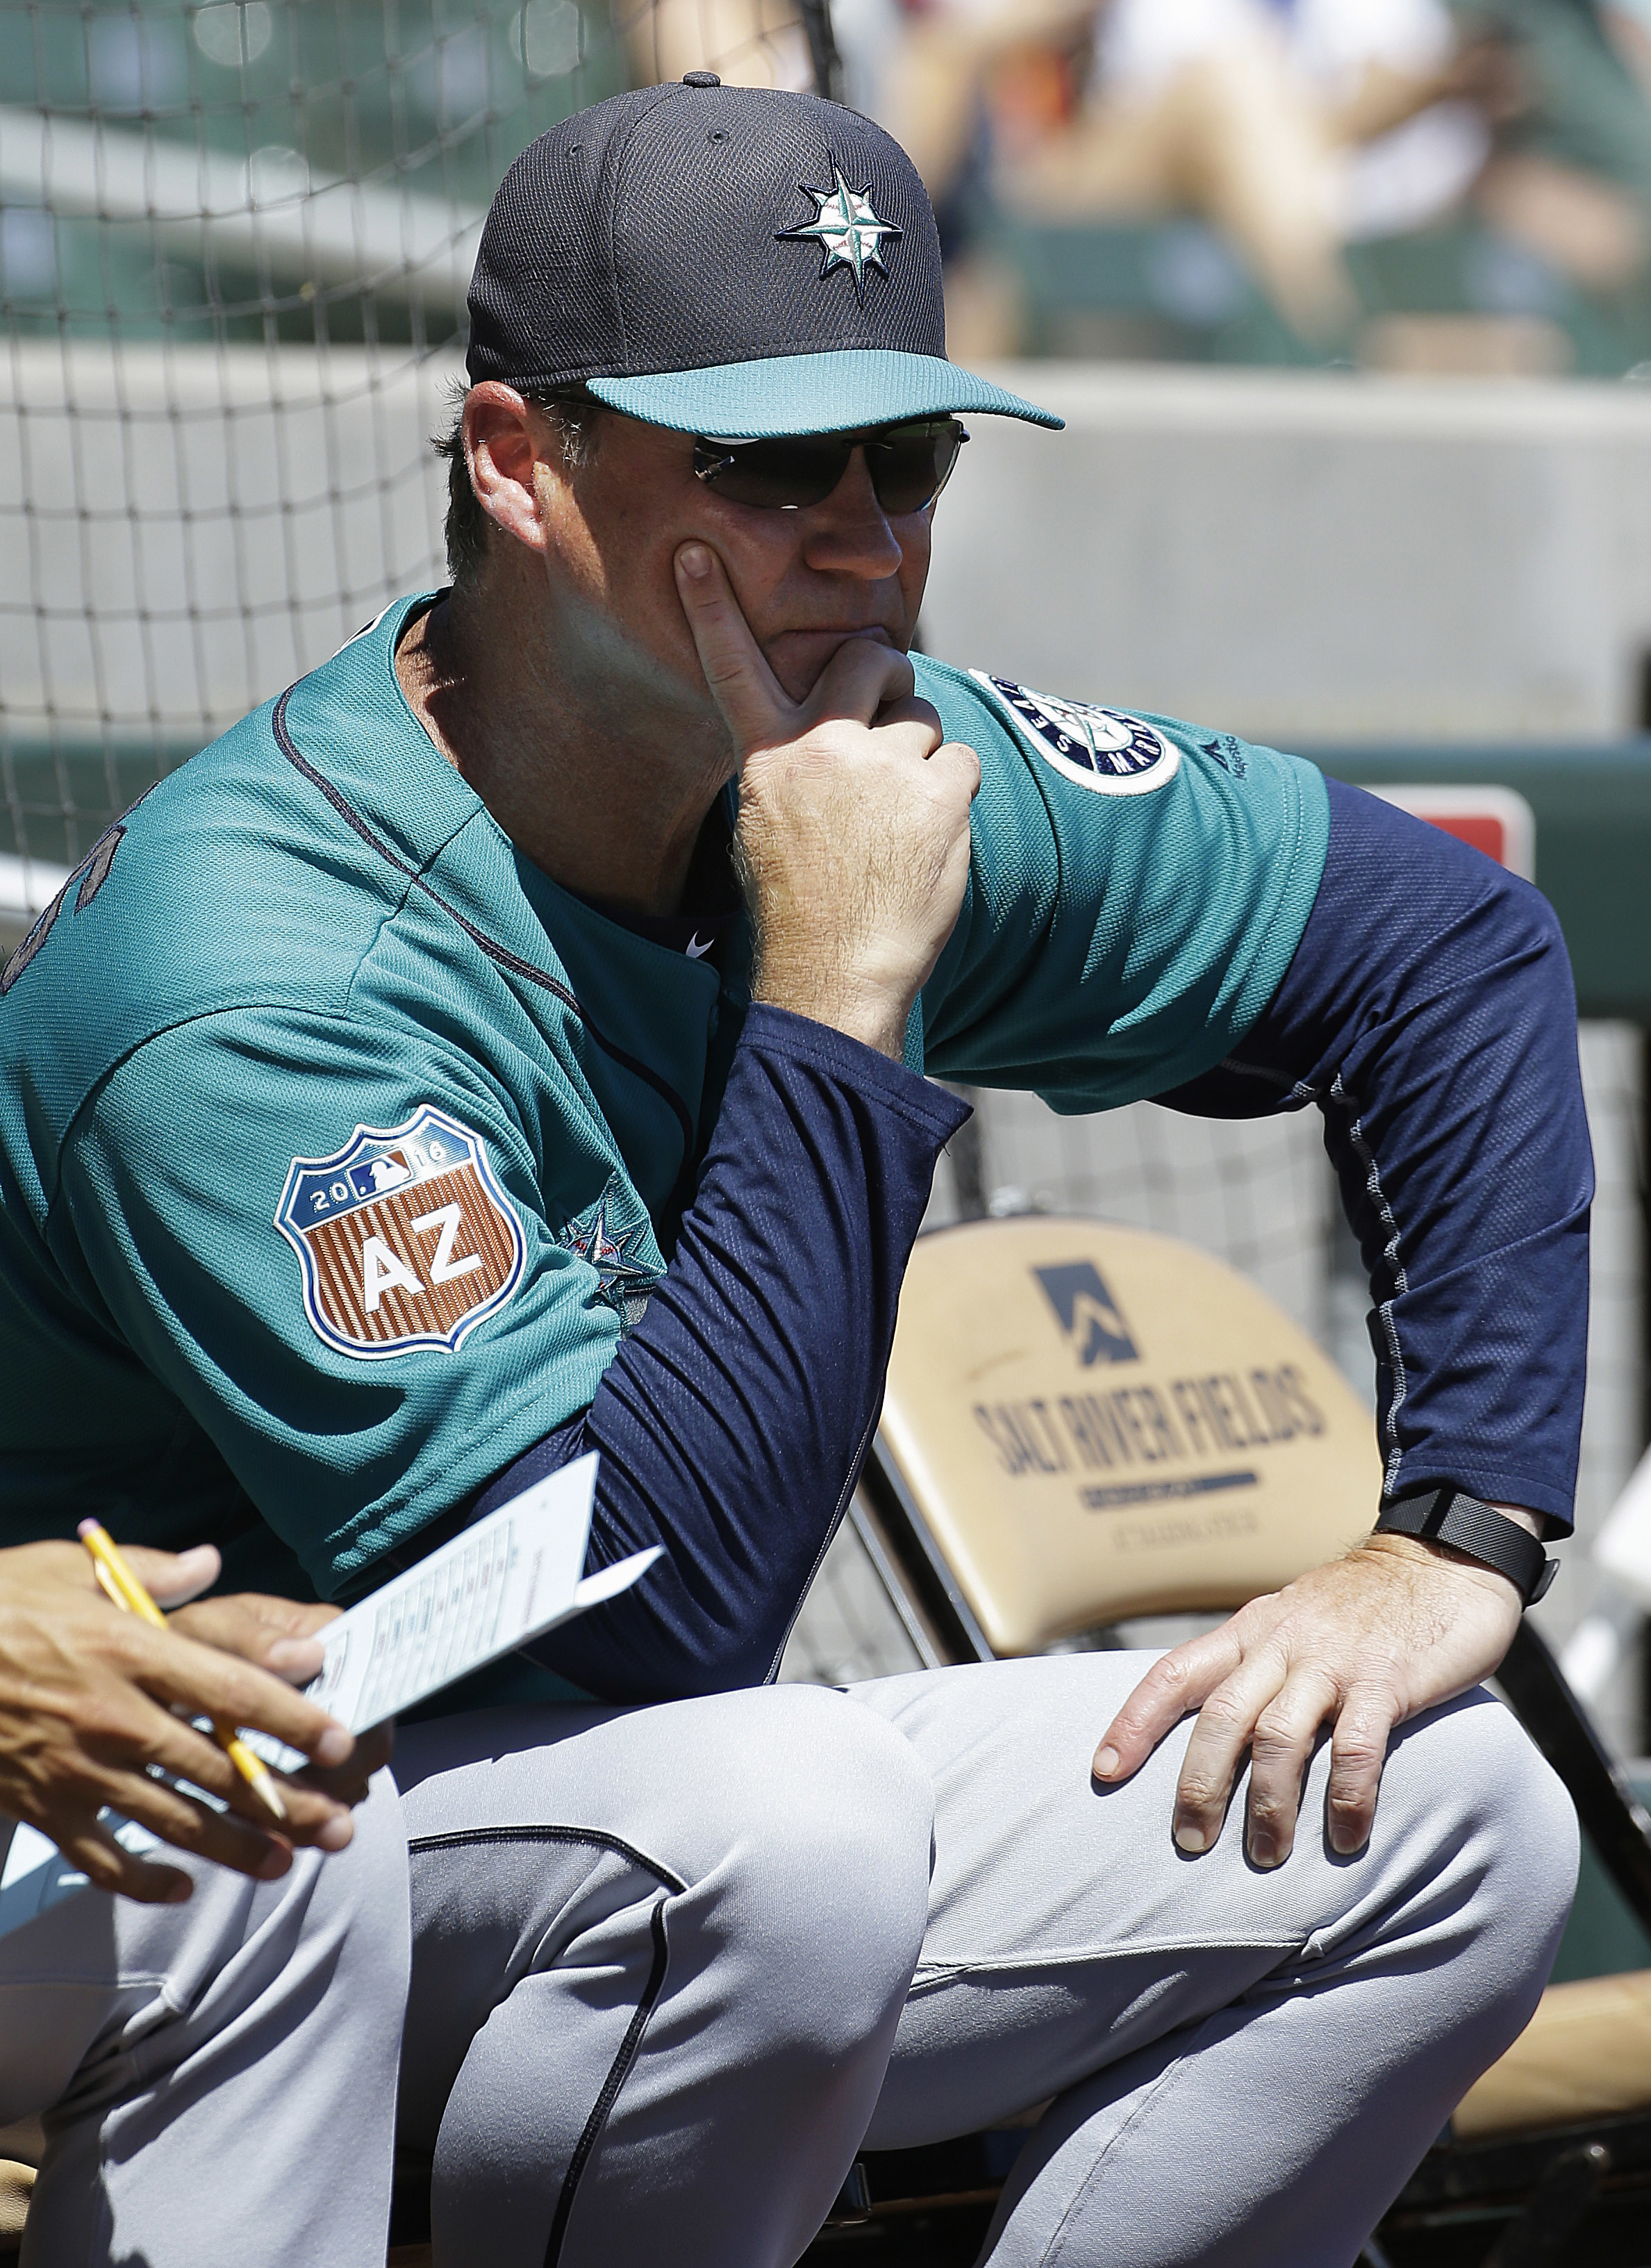 Seattle Mariners manager Scott Servais watches from field level in the first inning of a spring training baseball game against the Colorado Rockies in Scottsdale, Ariz., Saturday, April 2, 2016. (AP Photo/Jeff Chiu)